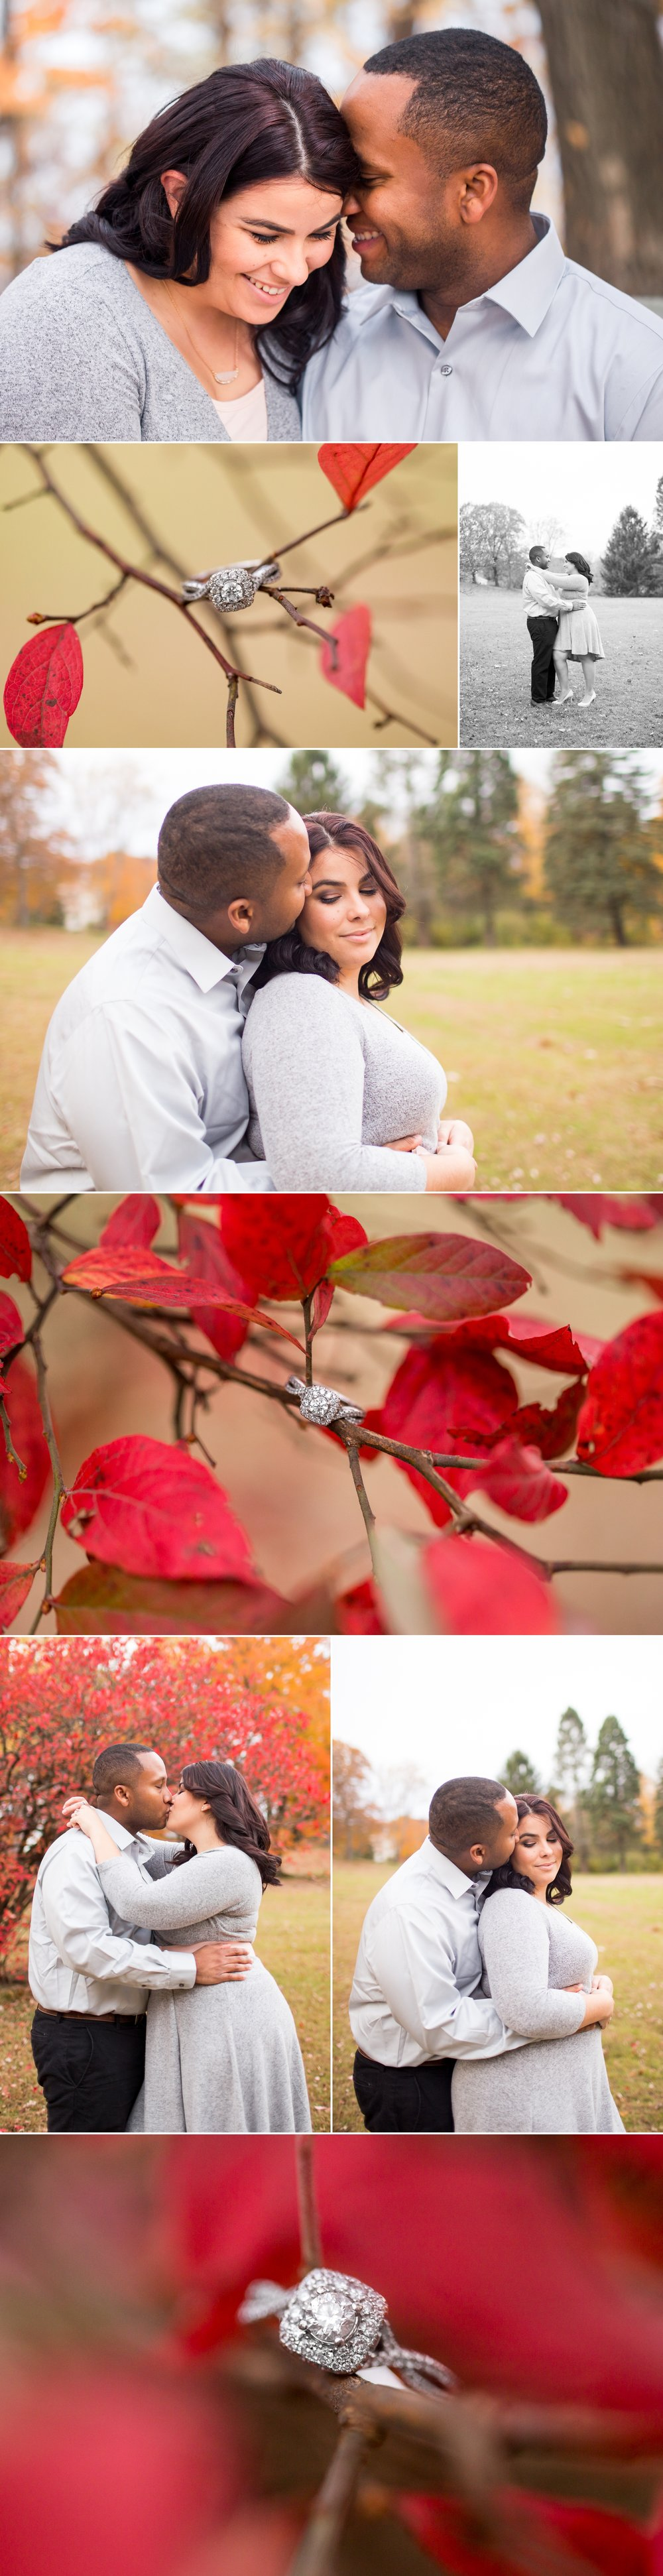 Stratford, CT Engagement Session at Boothe Memorial Park | CT, NYC, New England + Destination Luxury Wedding + Engagement Photographer | Shaina Lee Photography